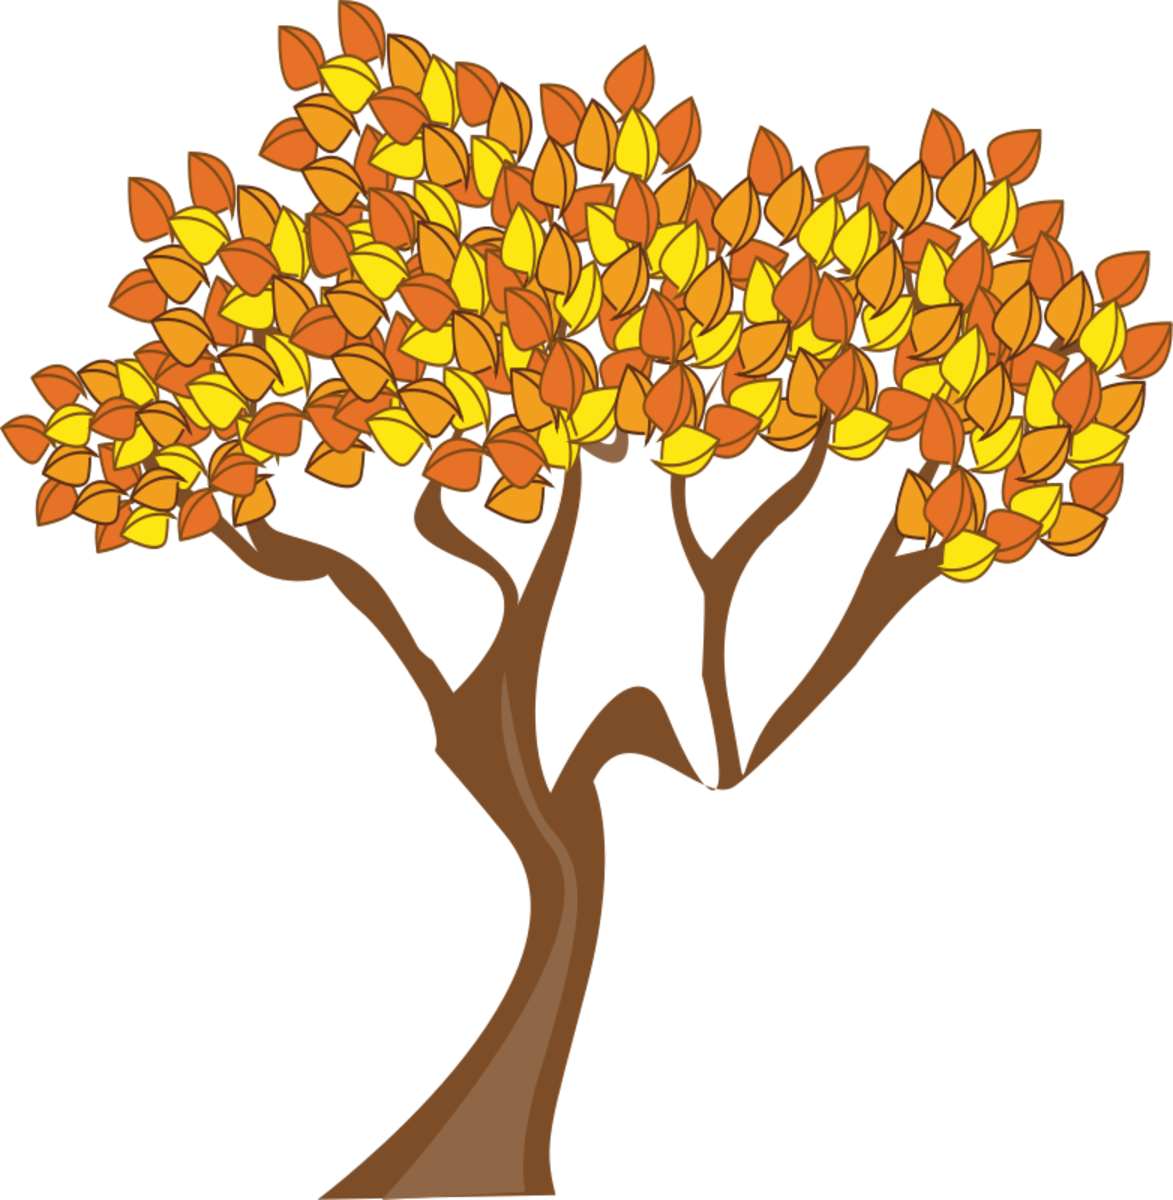 Tree with Orange and Yellow Leaves